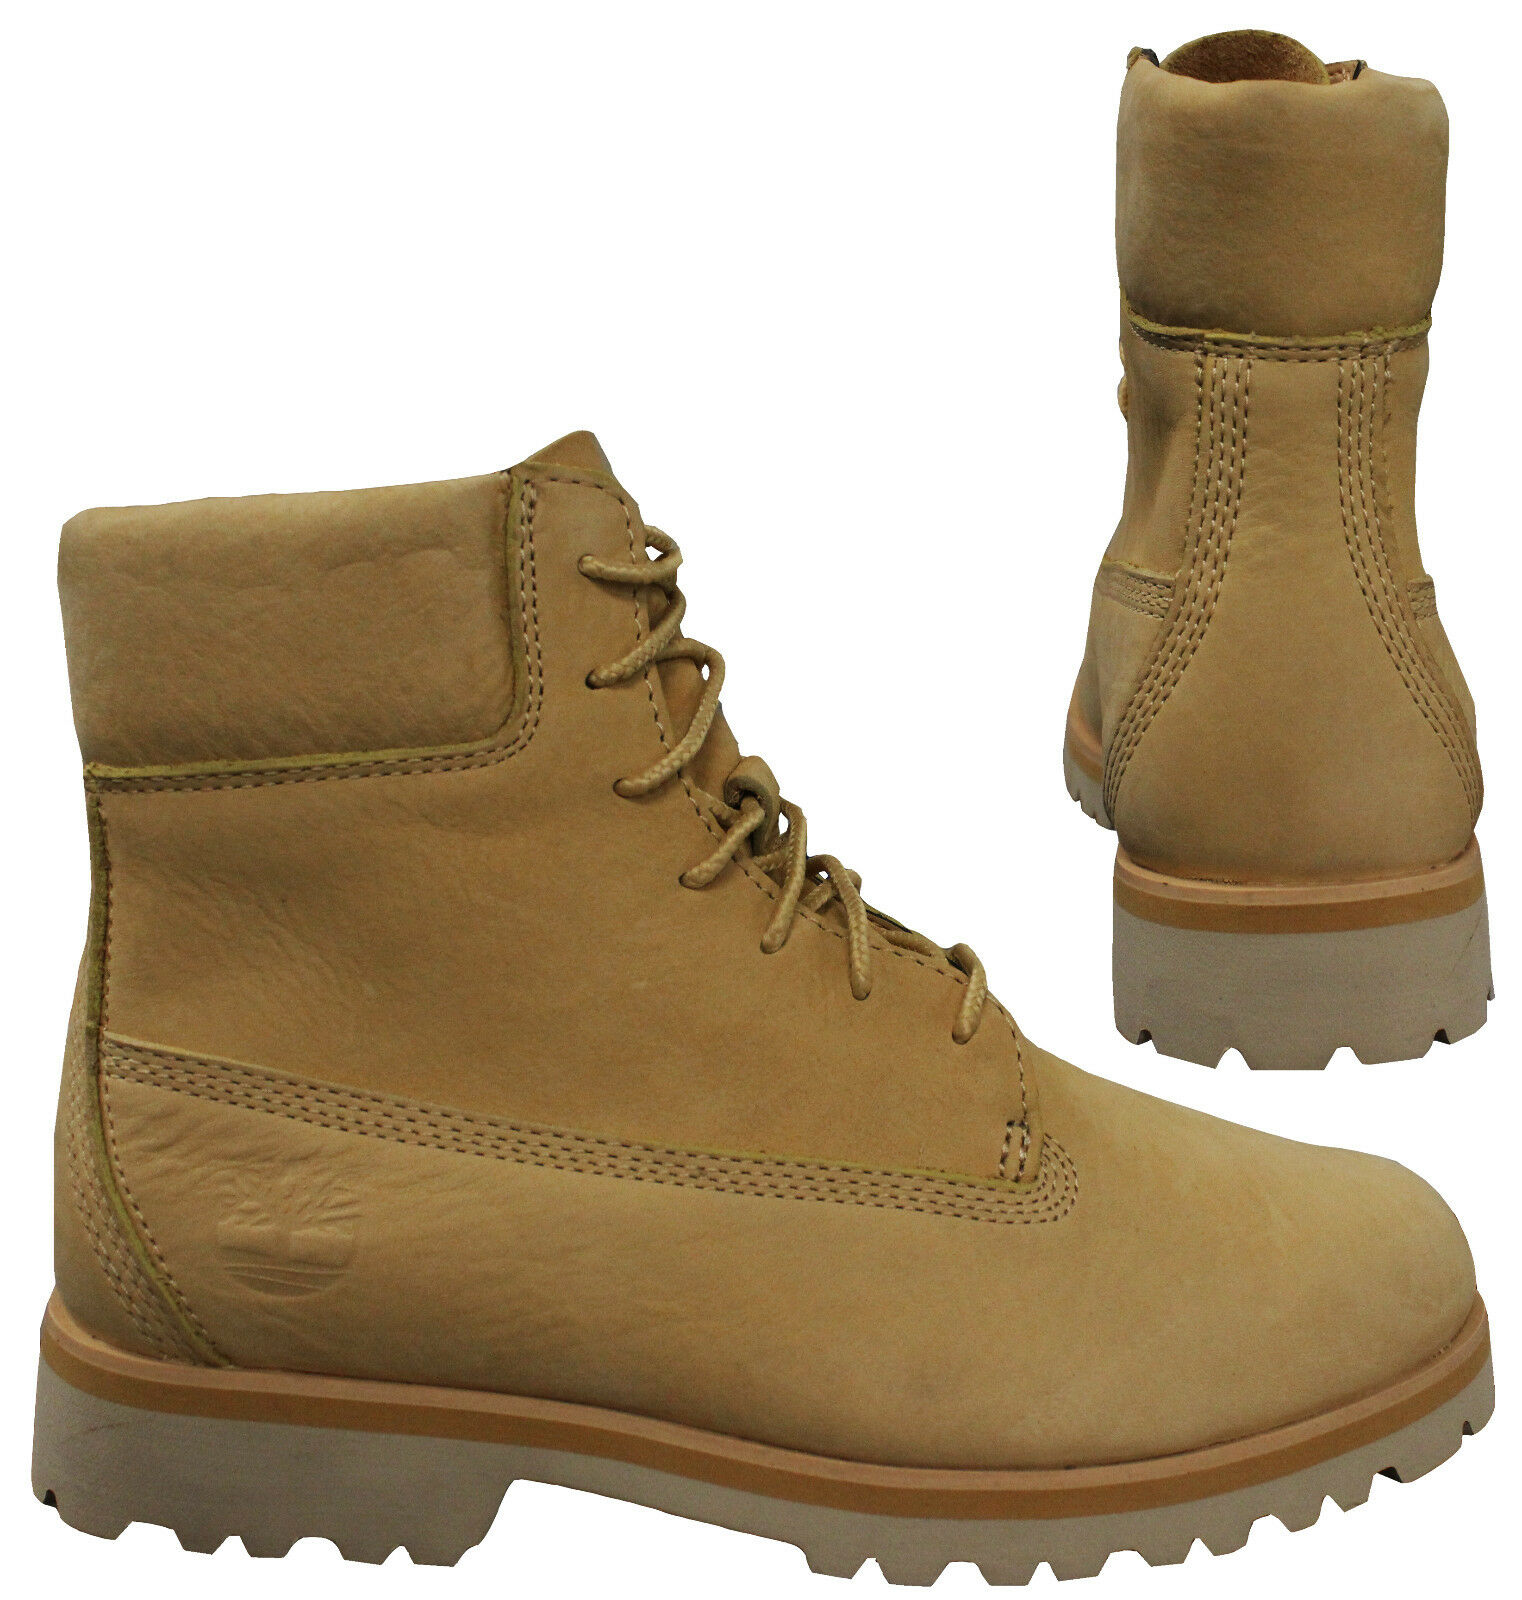 55e3df81 Timberland Chilmark 6 Inch Mens Nubuck Beige Leather Lace Up Boots ...